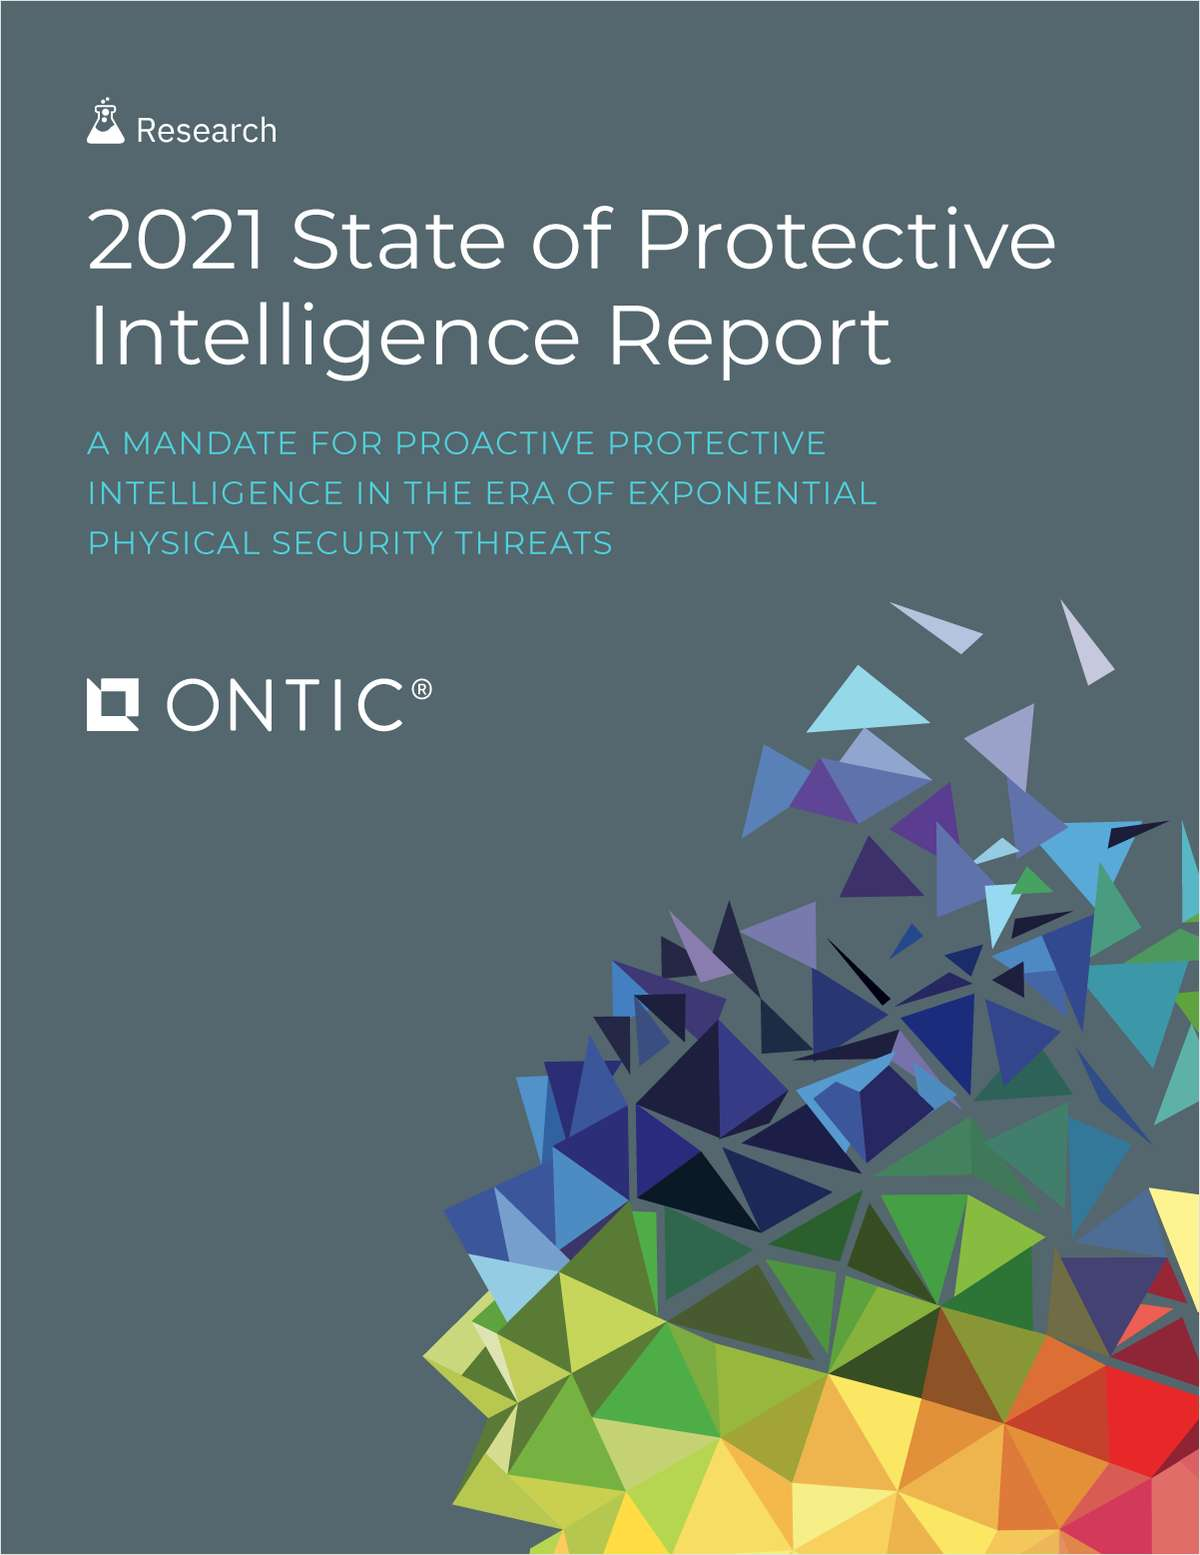 The 2021 State of Protective Intelligence Report